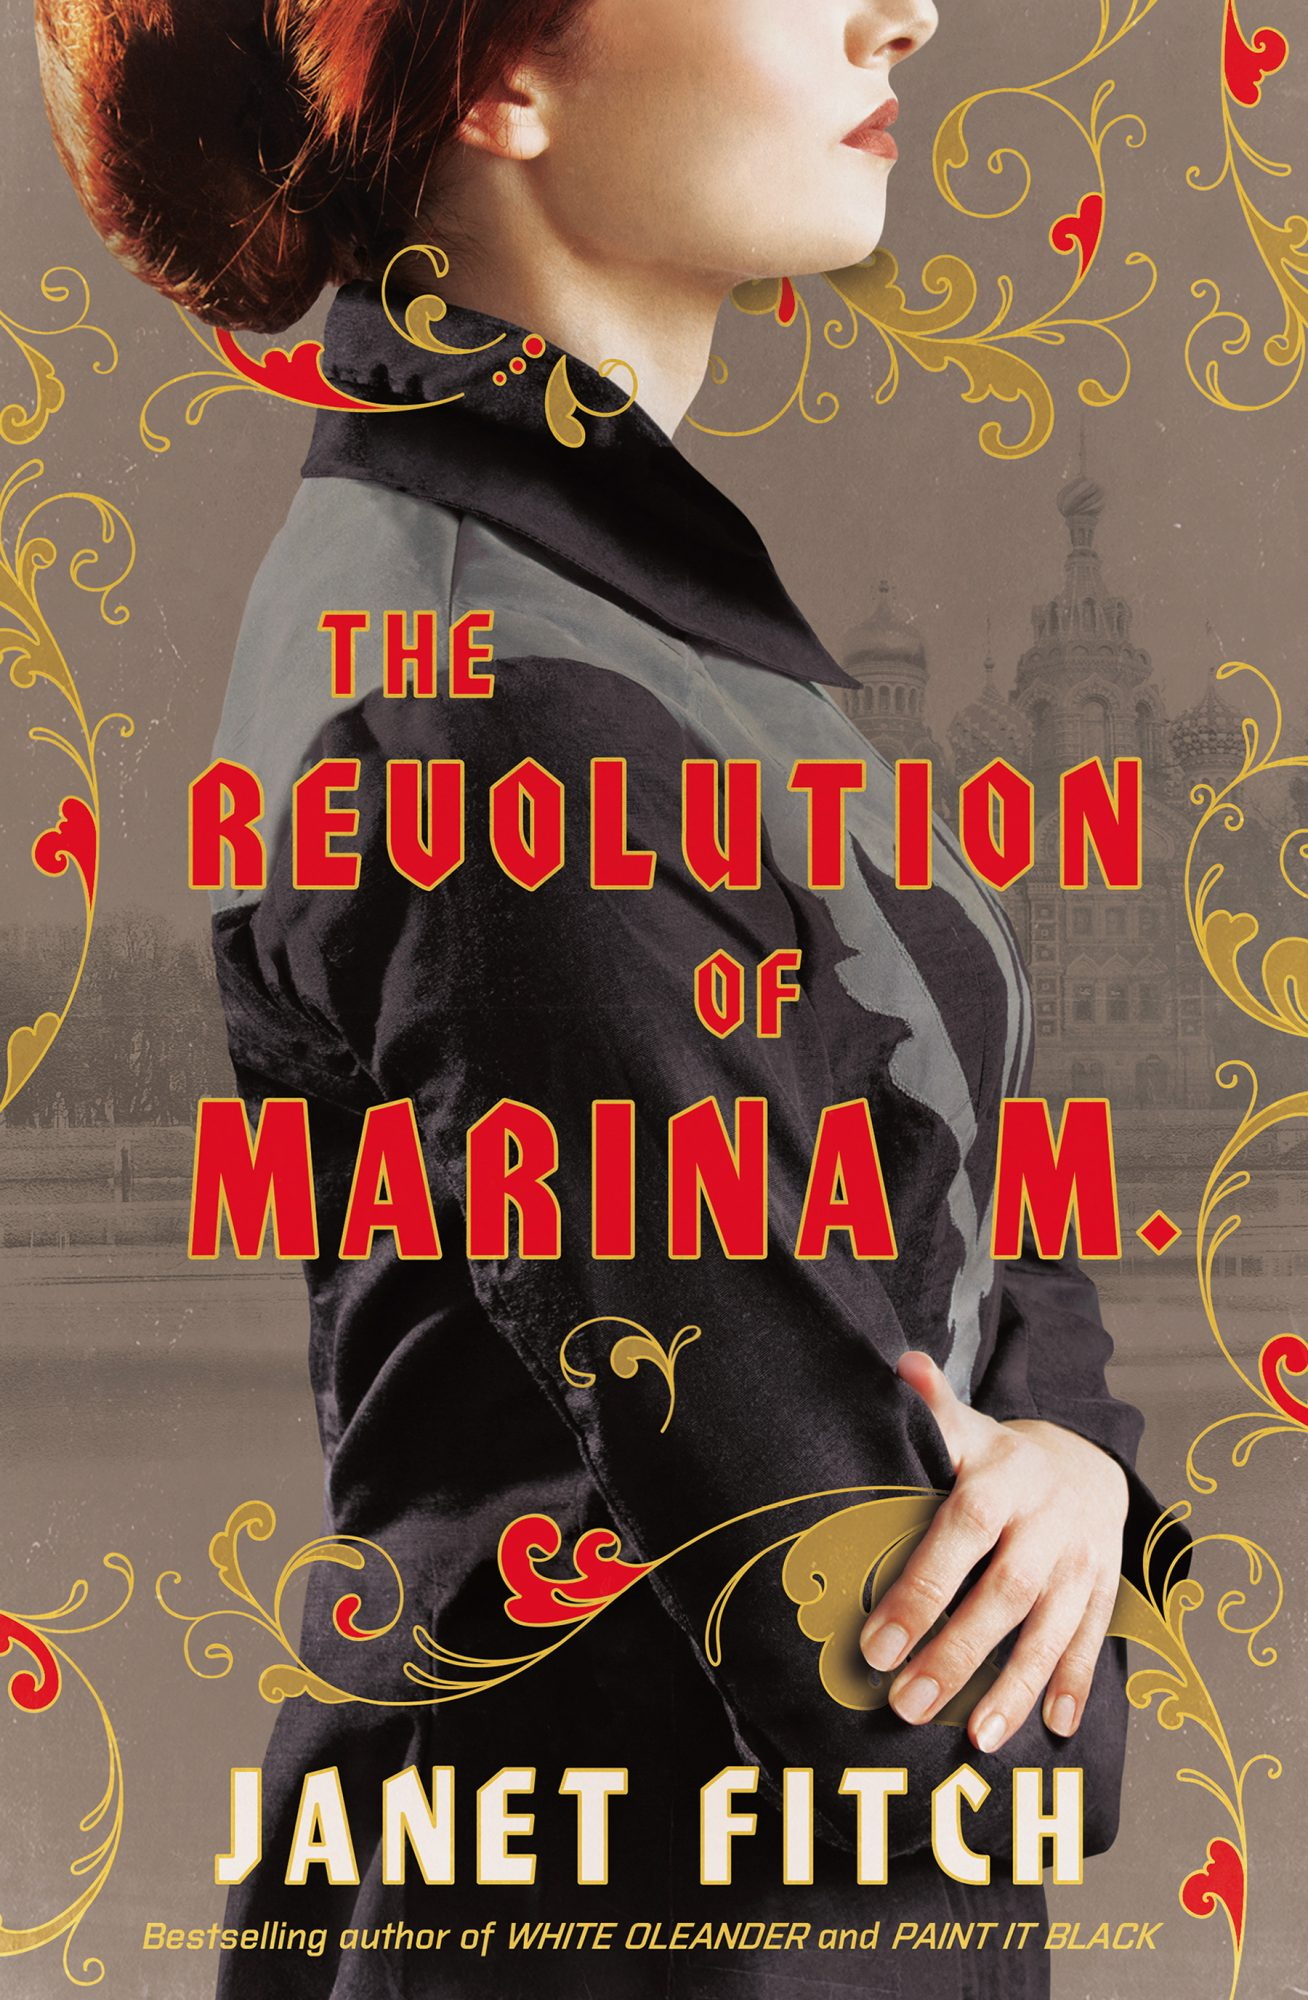 The Revolution of Marina M.by Janet Fitch